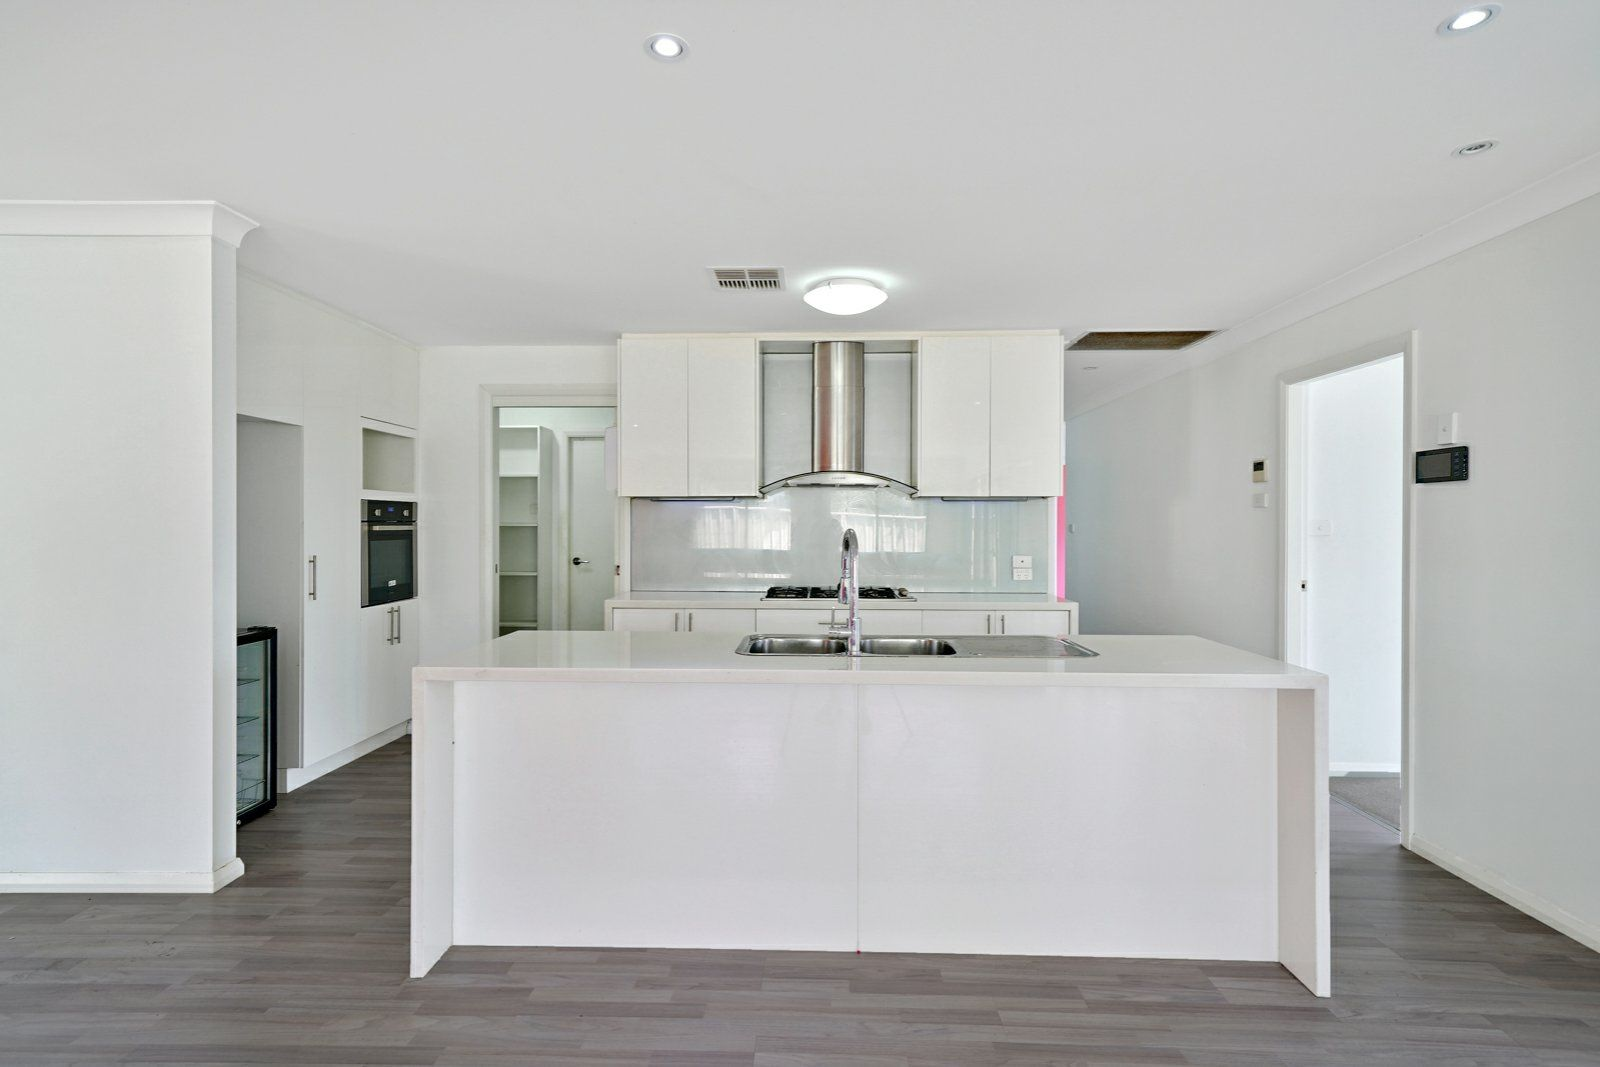 113A Minto Rd, Minto NSW 2566, Image 2